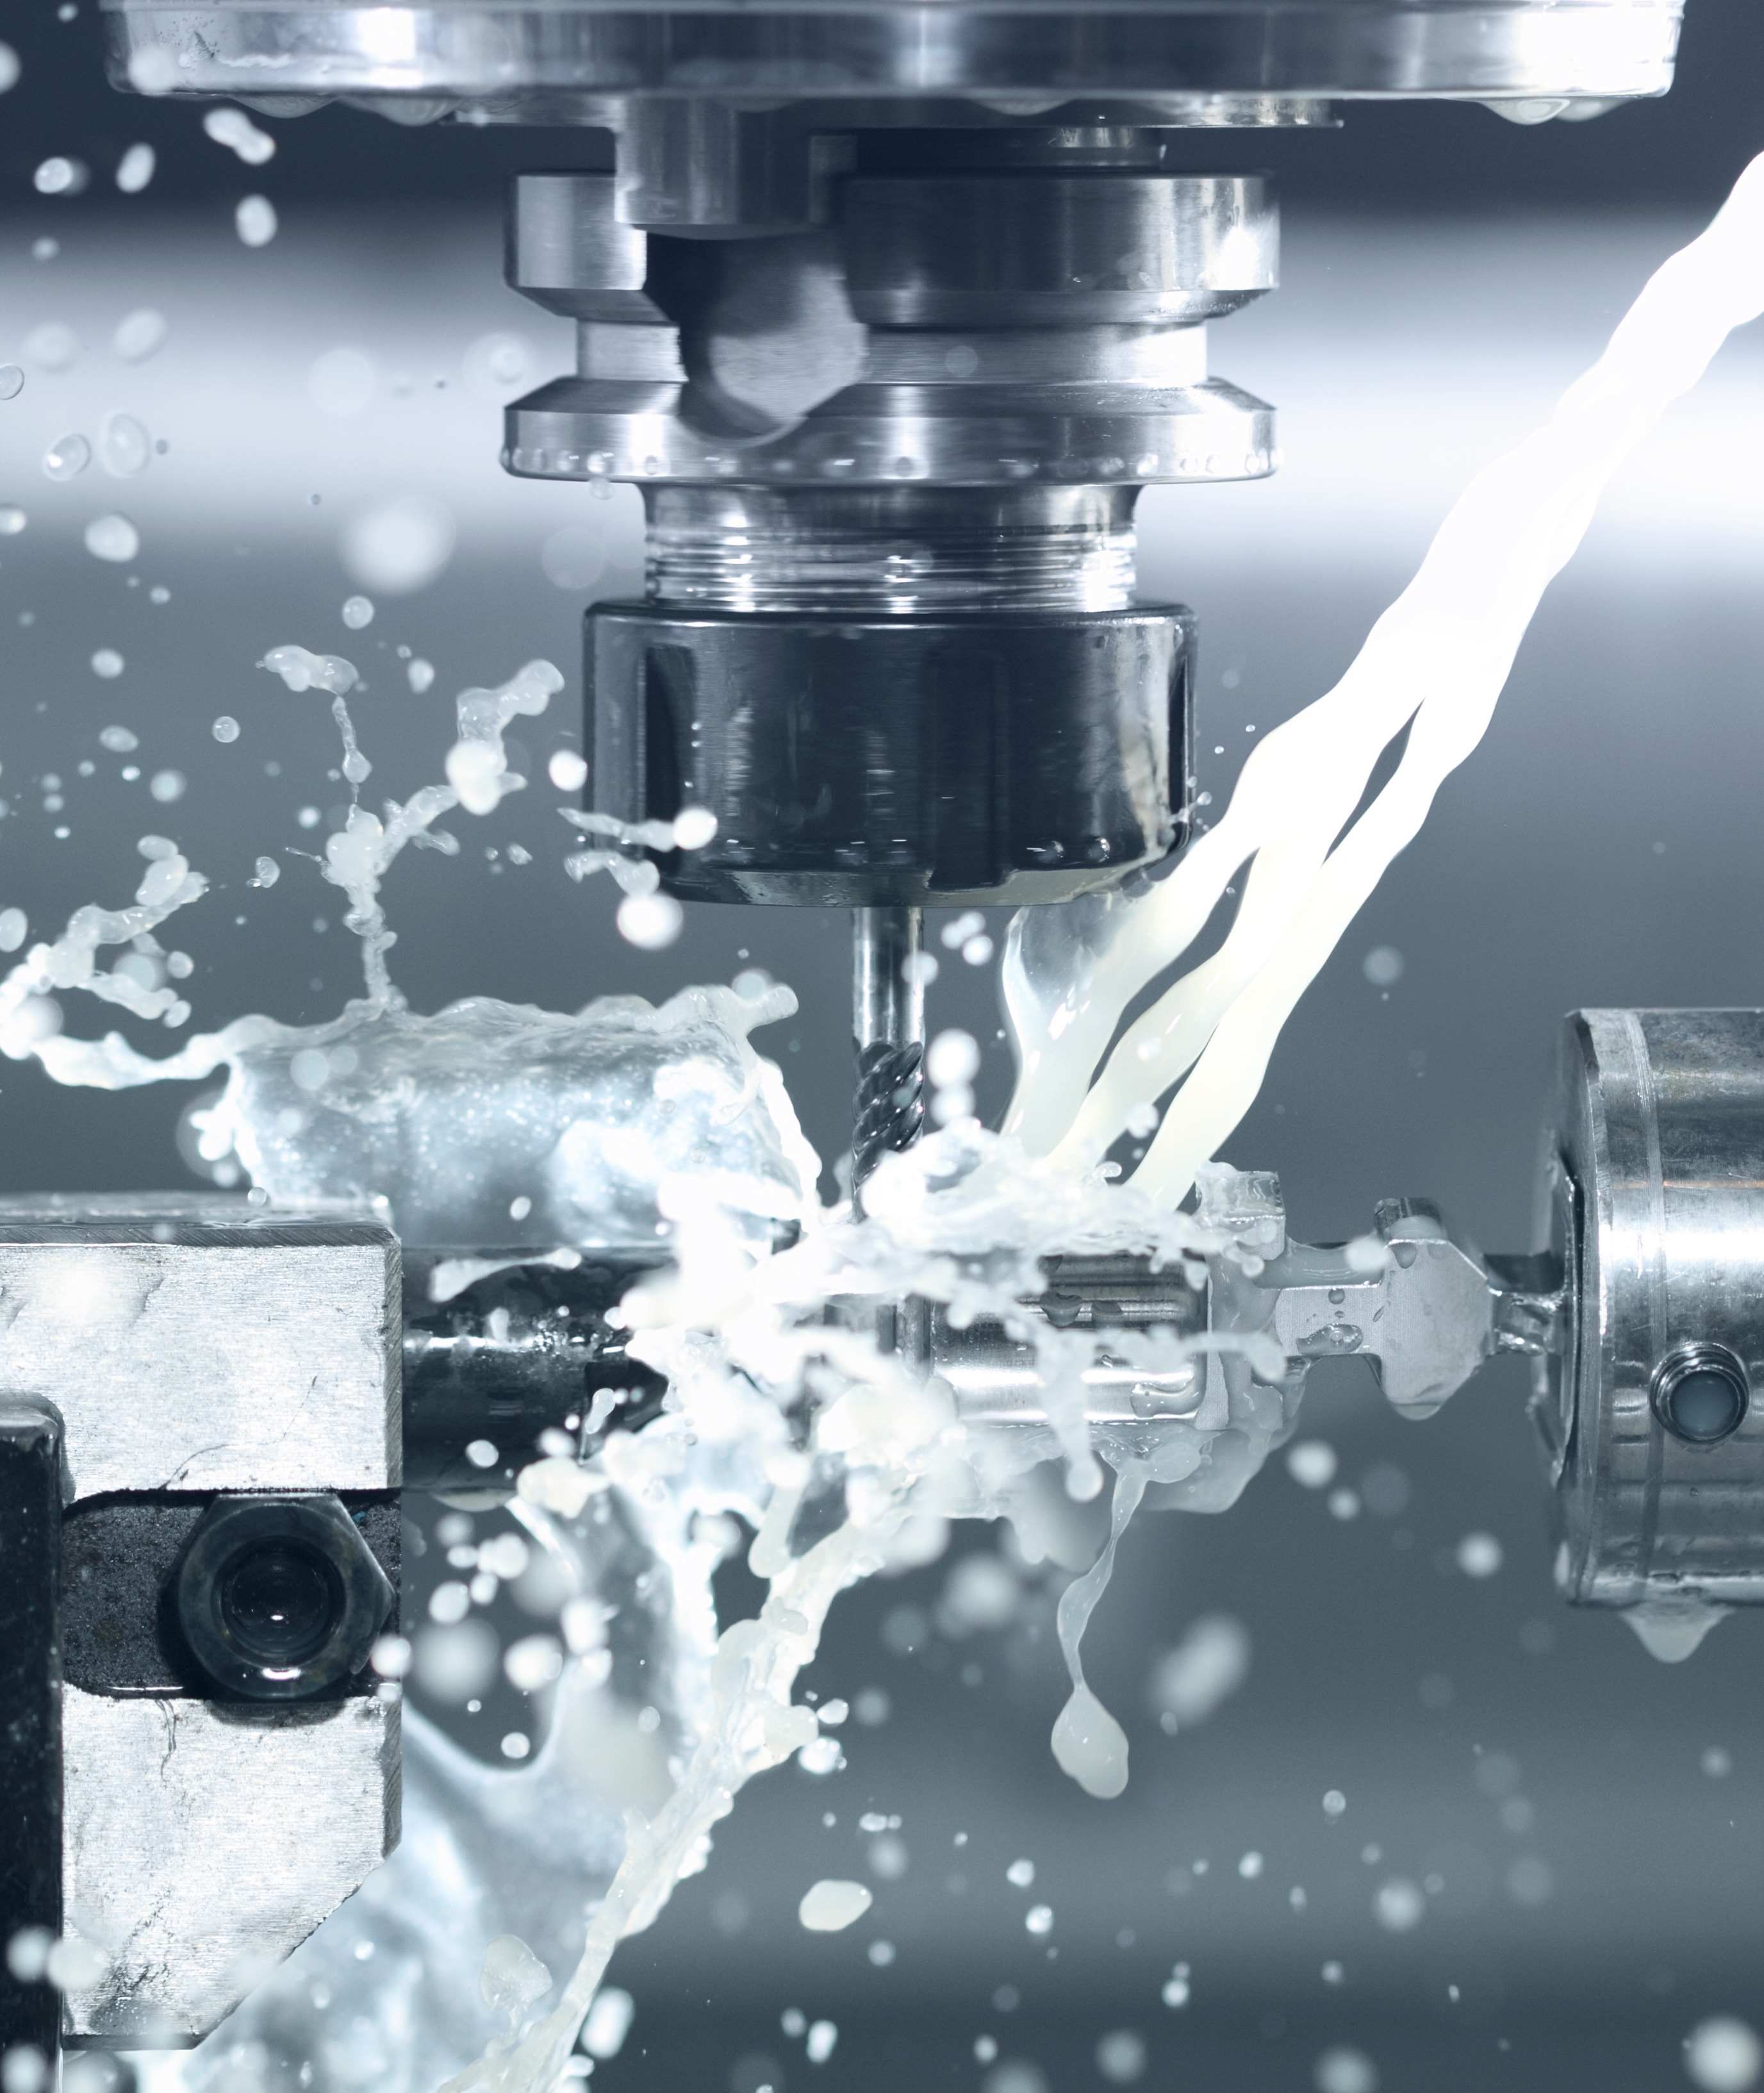 CNC-milling-at-work-154368811_4900x3267